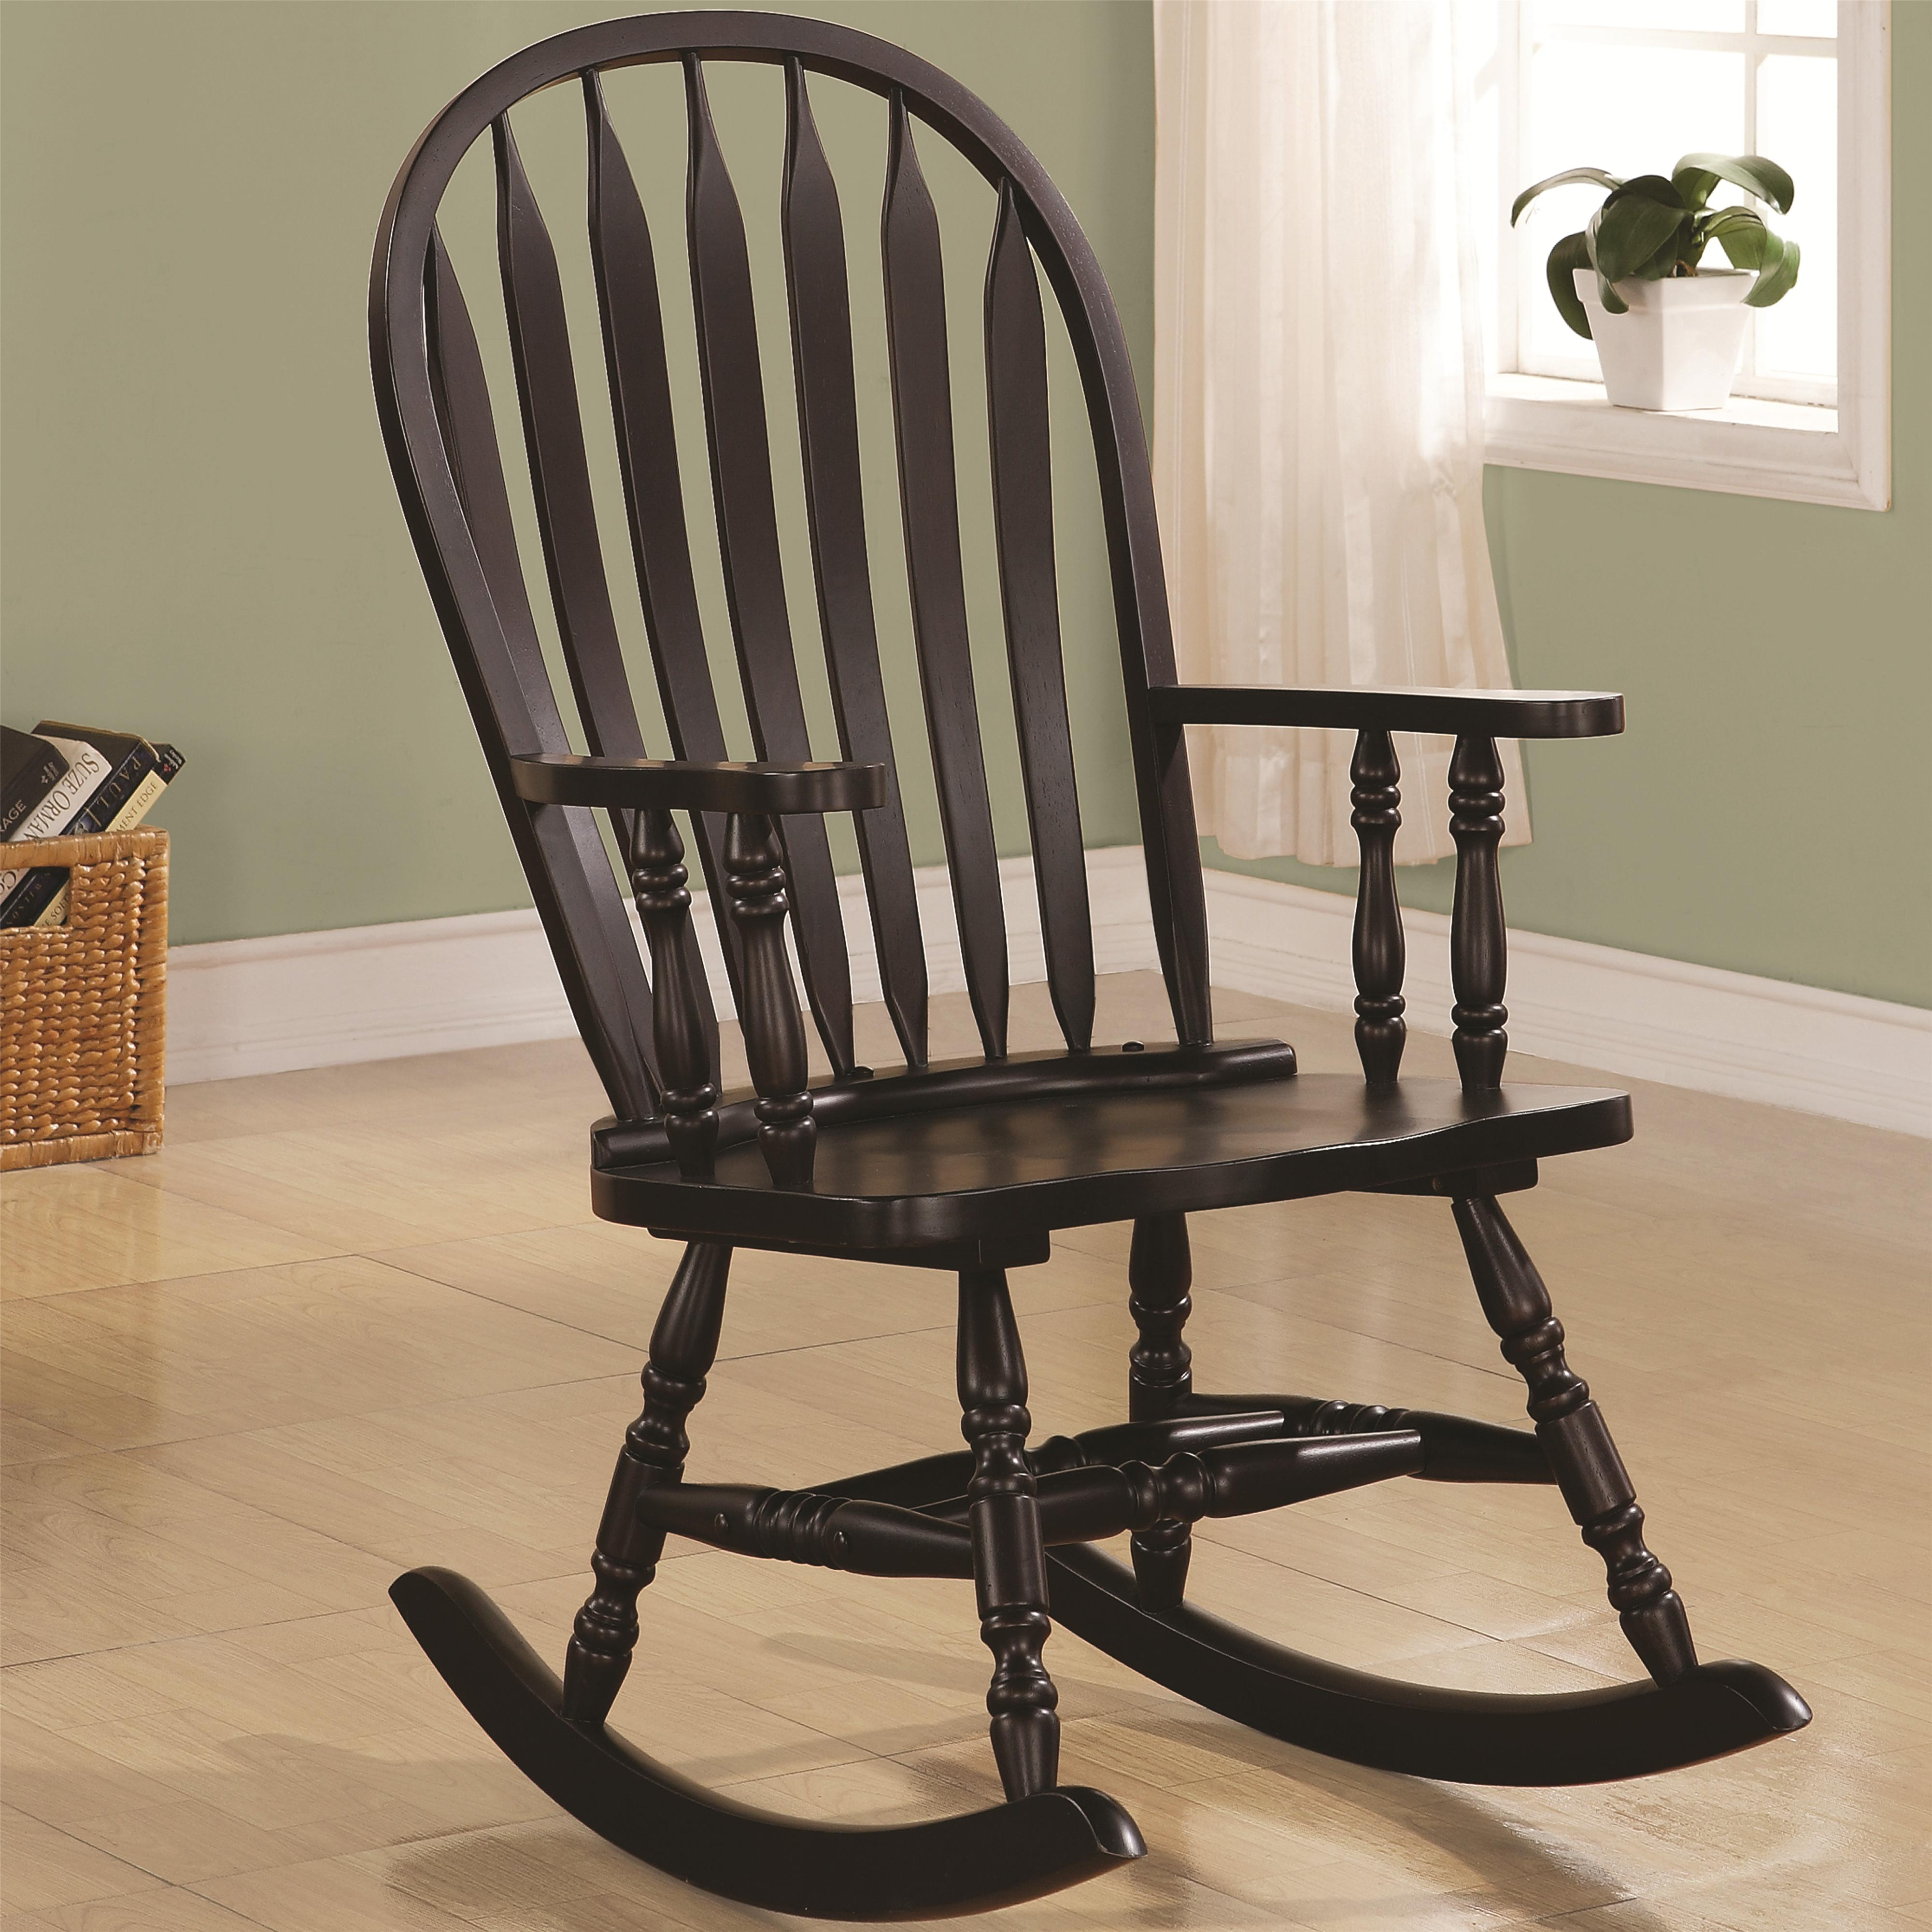 Wood Rocking Chair Rockers Transitional Rocking Chair In Black Finish By Coaster At Value City Furniture